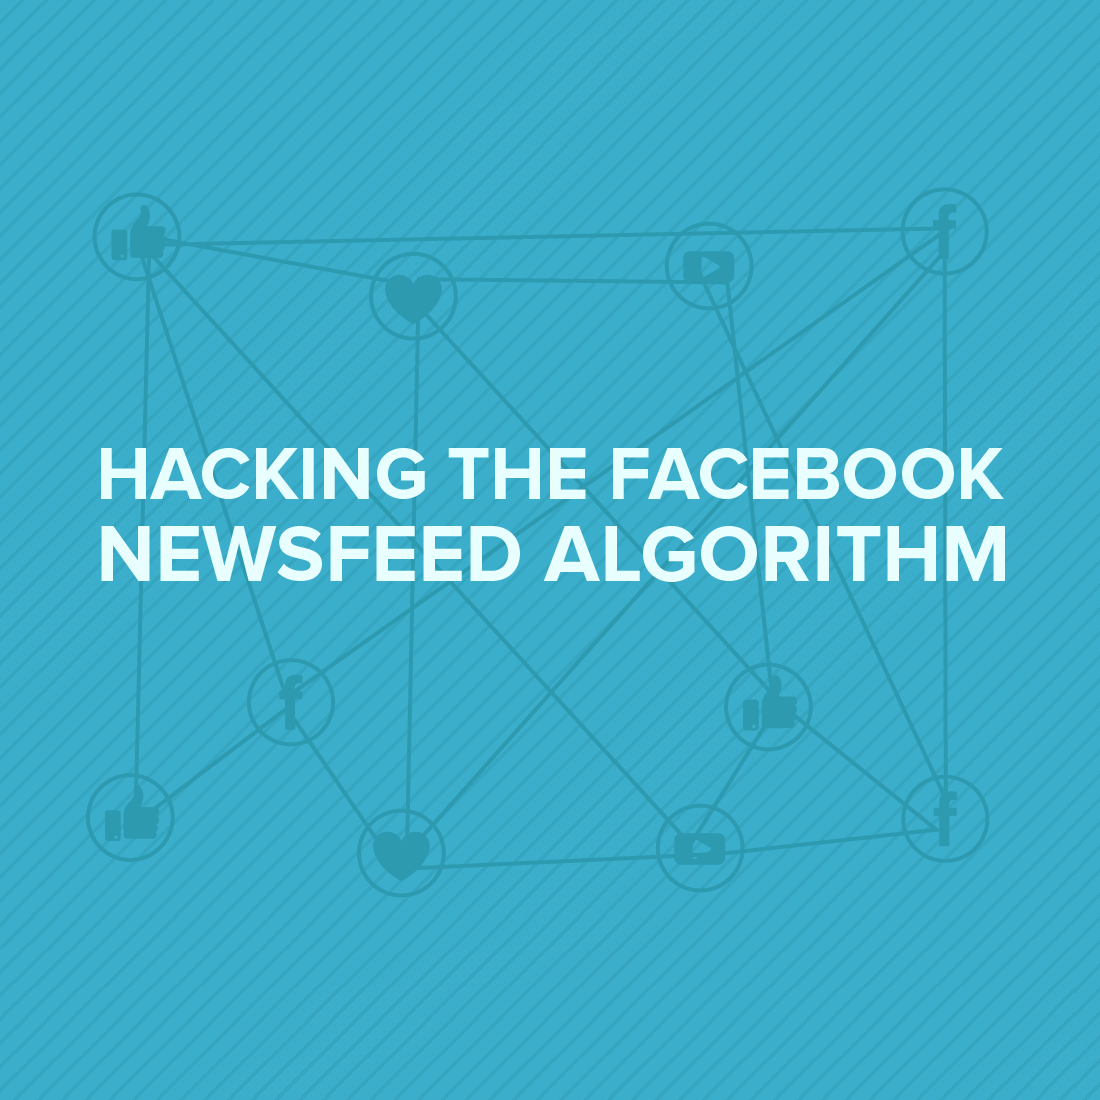 How to Hack the Facebook Algorithm